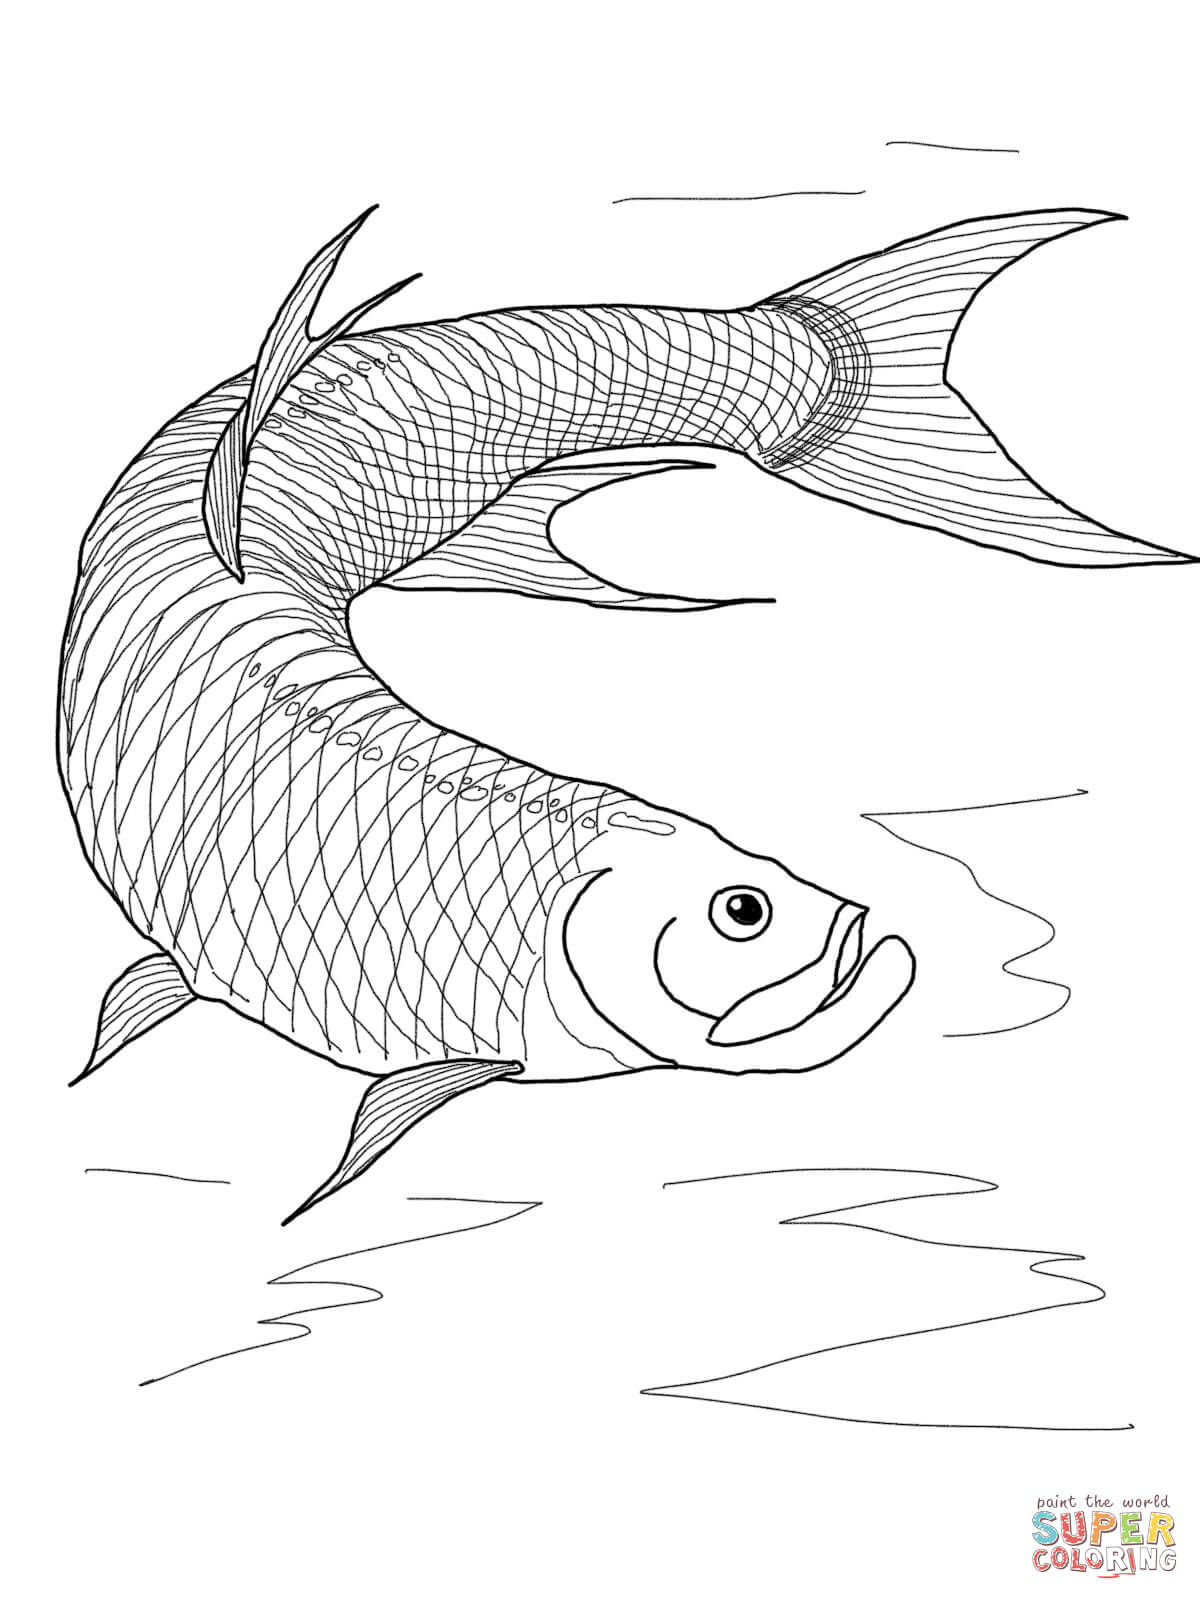 Tarpon Fish Coloring Page